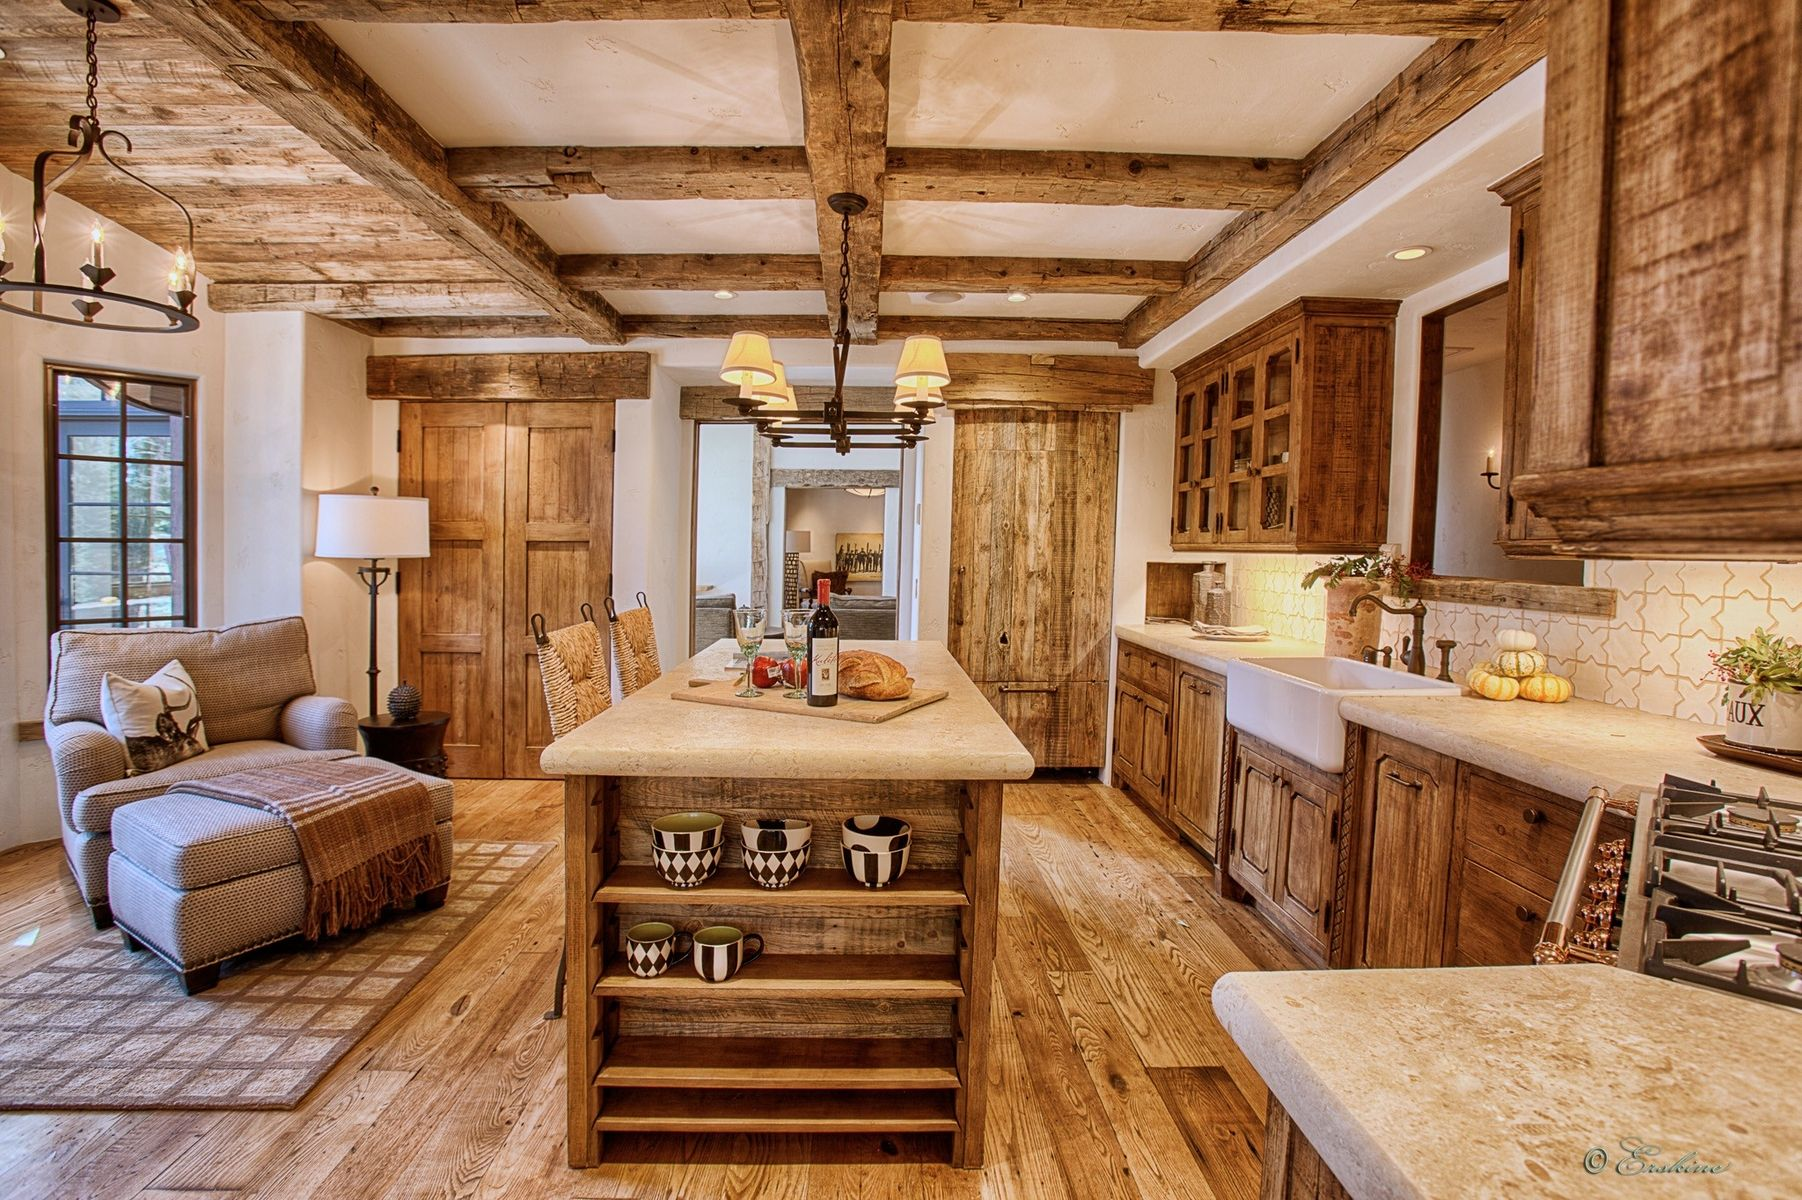 wooden kitchens inmyinterior n light wood kitchen cabinets Wood Kitchen Furniture Images About Kitchens On Pinterest Countertops Cherry Kitchen Cabinets And Wood